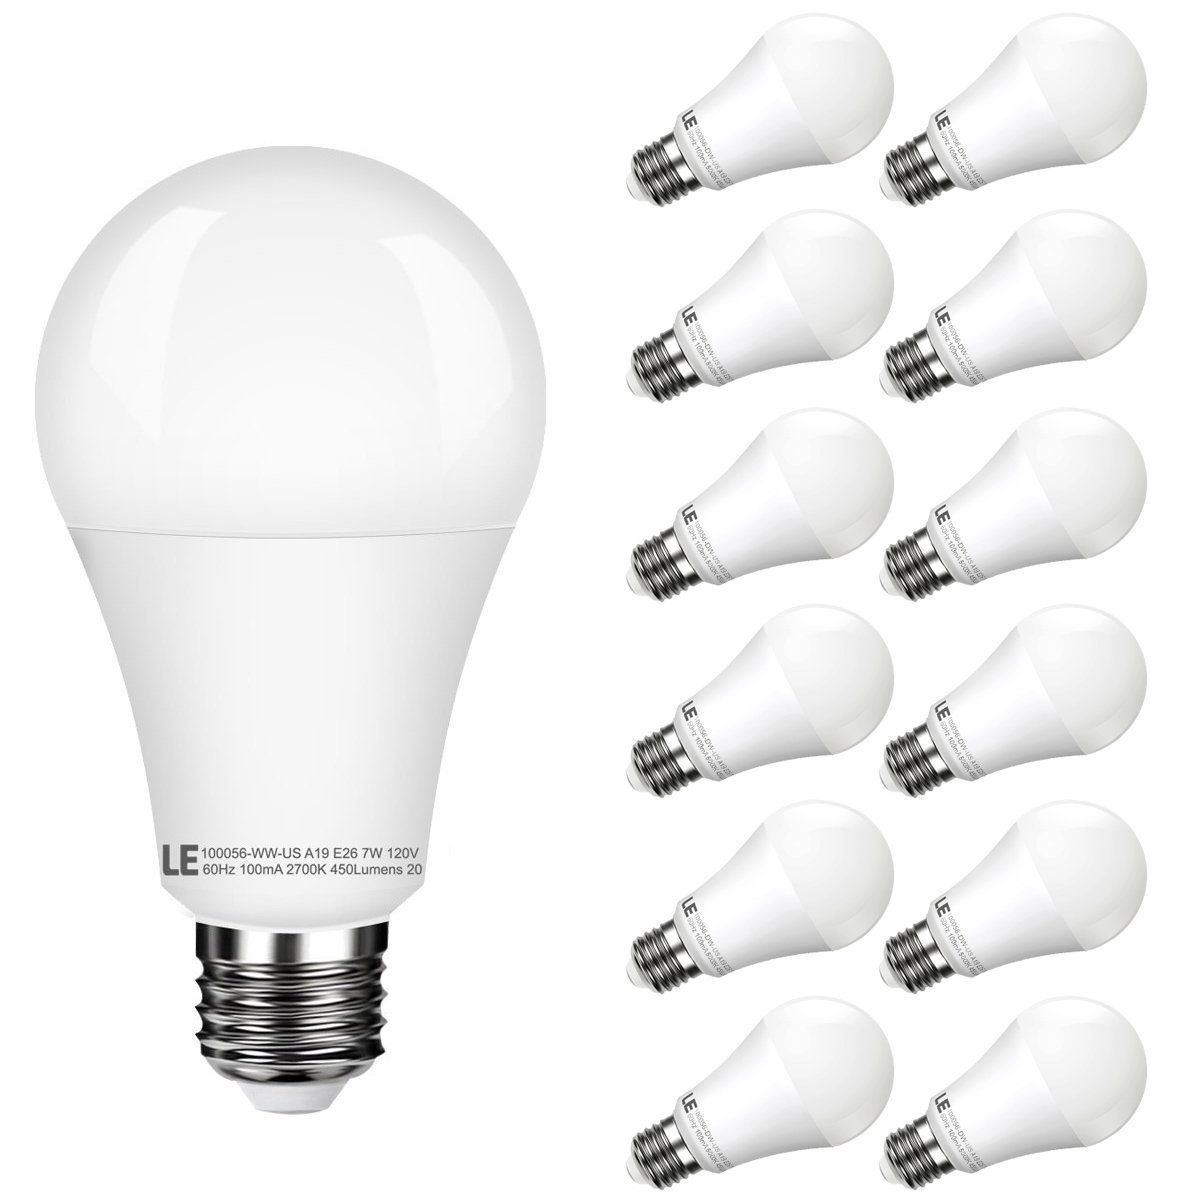 7w 450lm Warm White A19 E26 Led Light Bulbs 40w Incandescent Equivalent Pack Of 12 Units Bulb White Led Lights Light Bulb